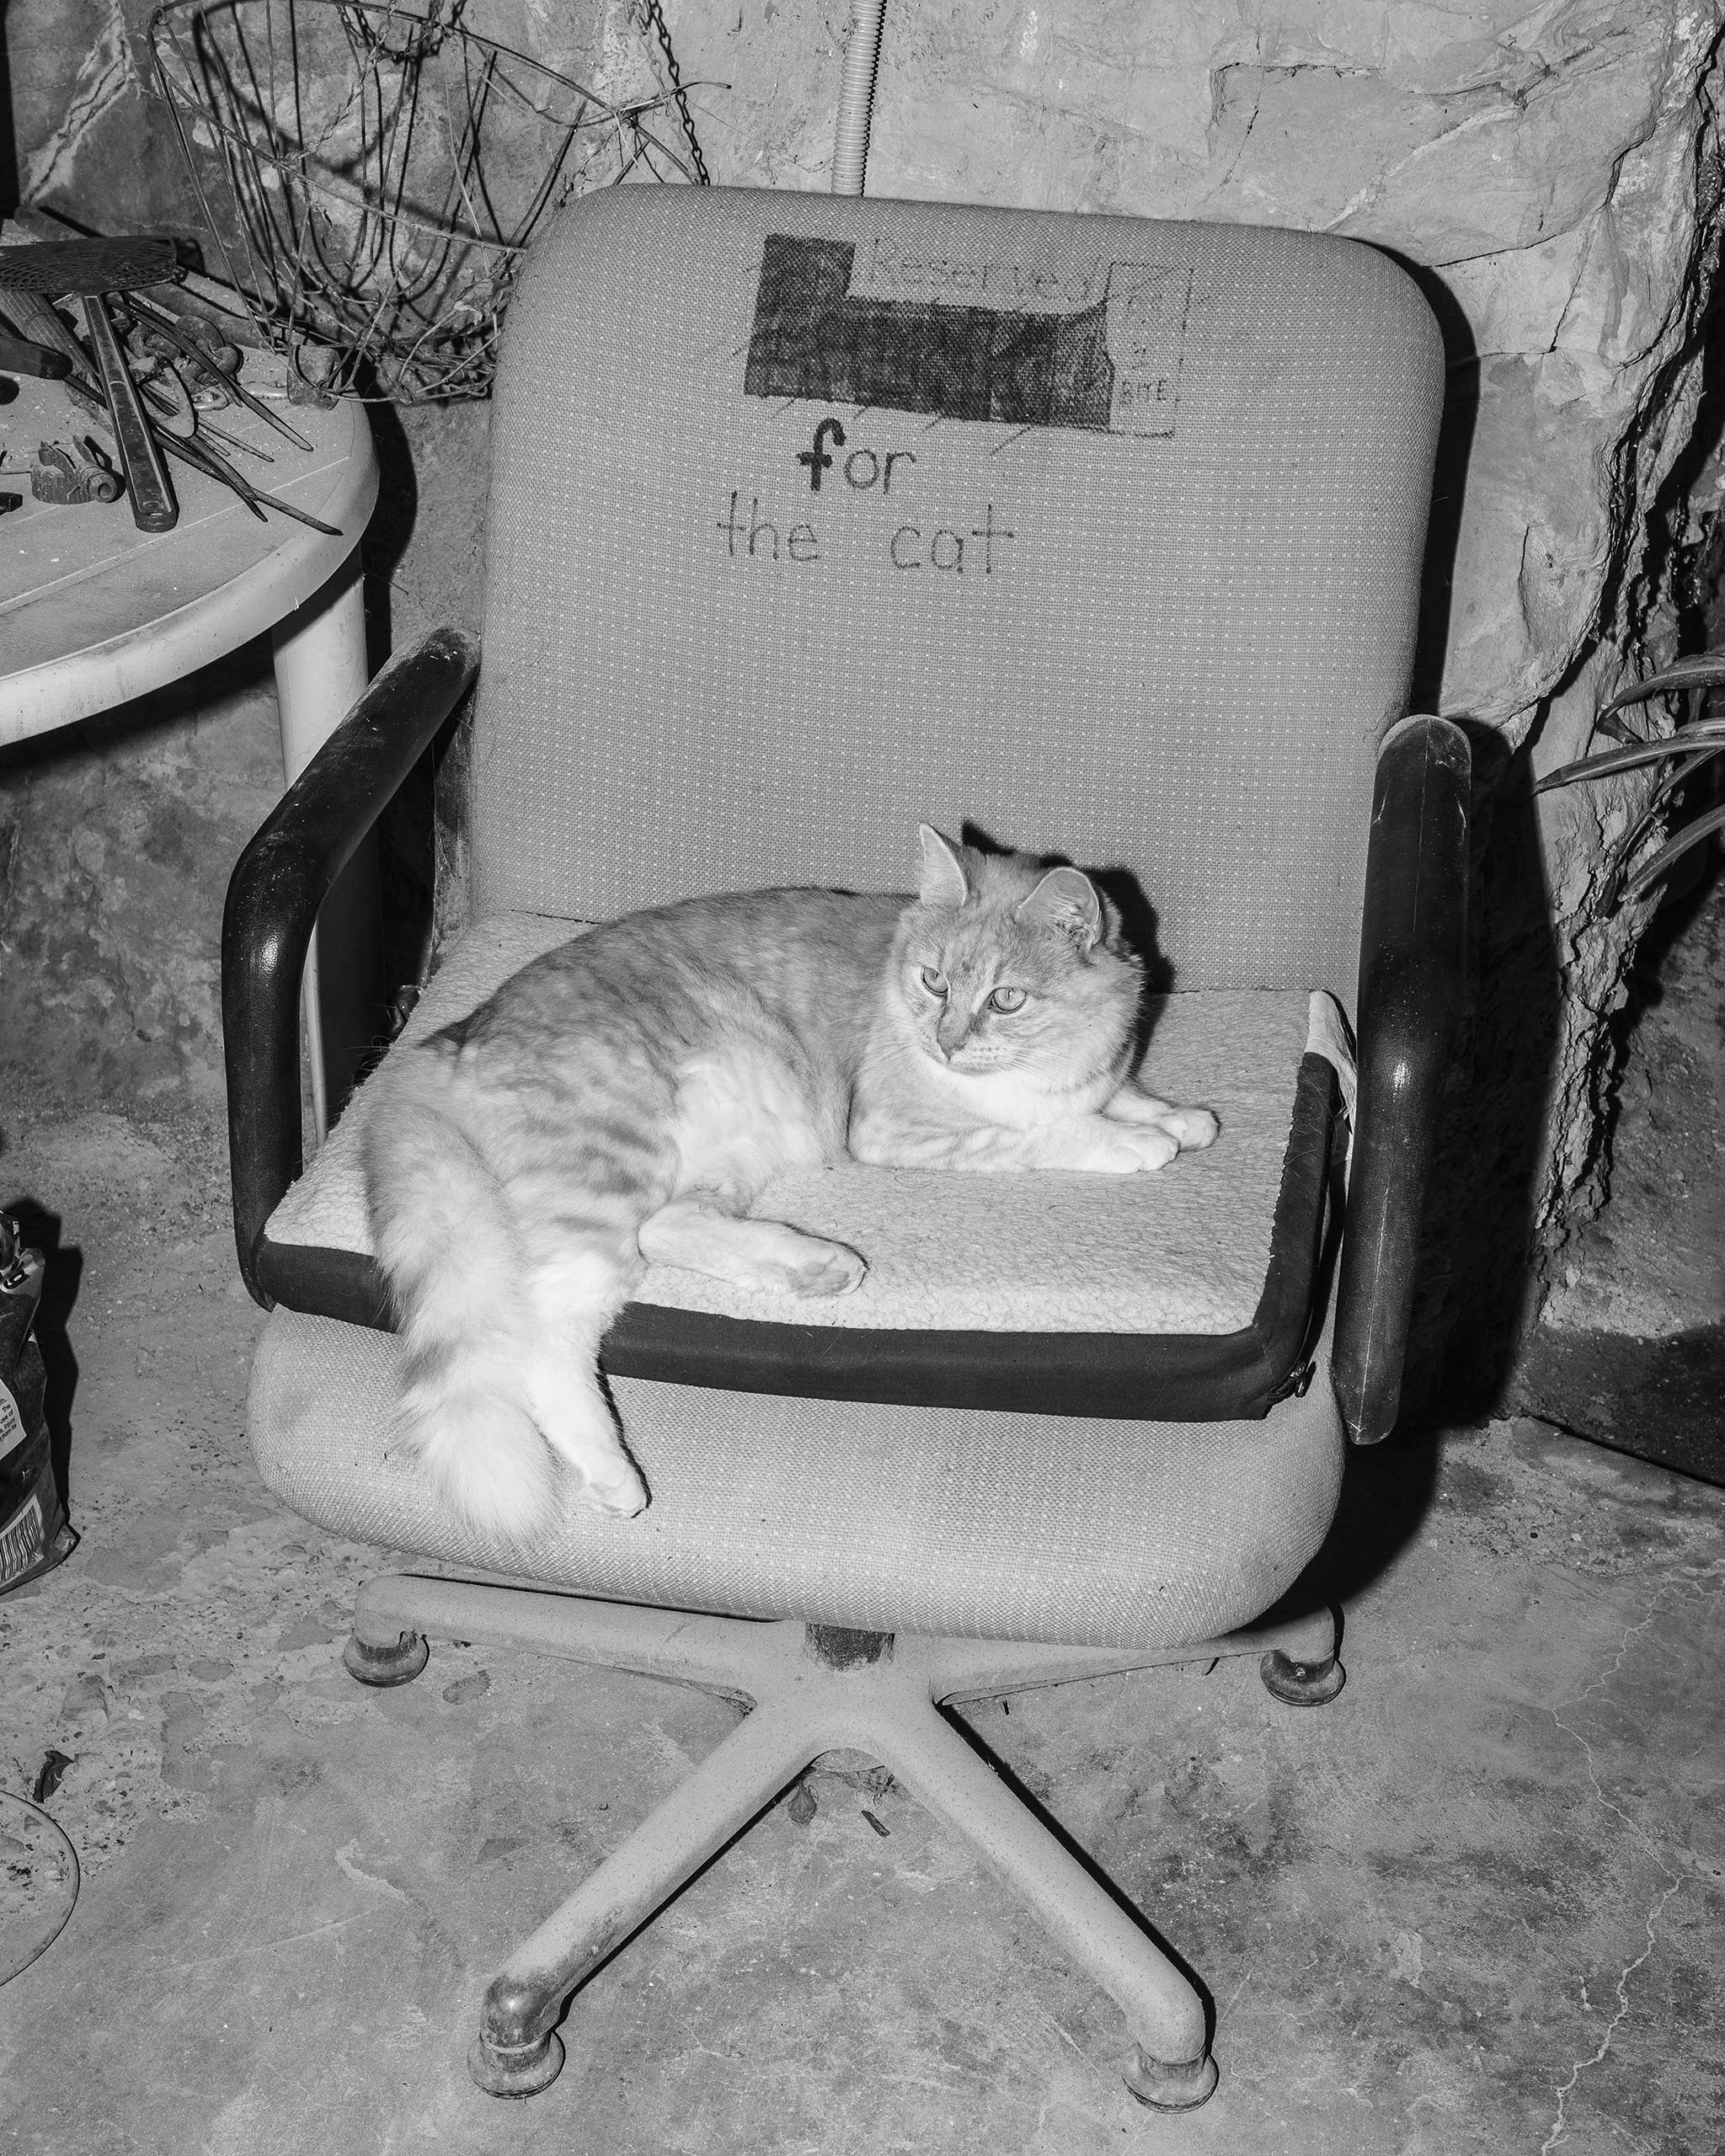 Reserved for the cat, Coober Pedy, Australia, 2016.